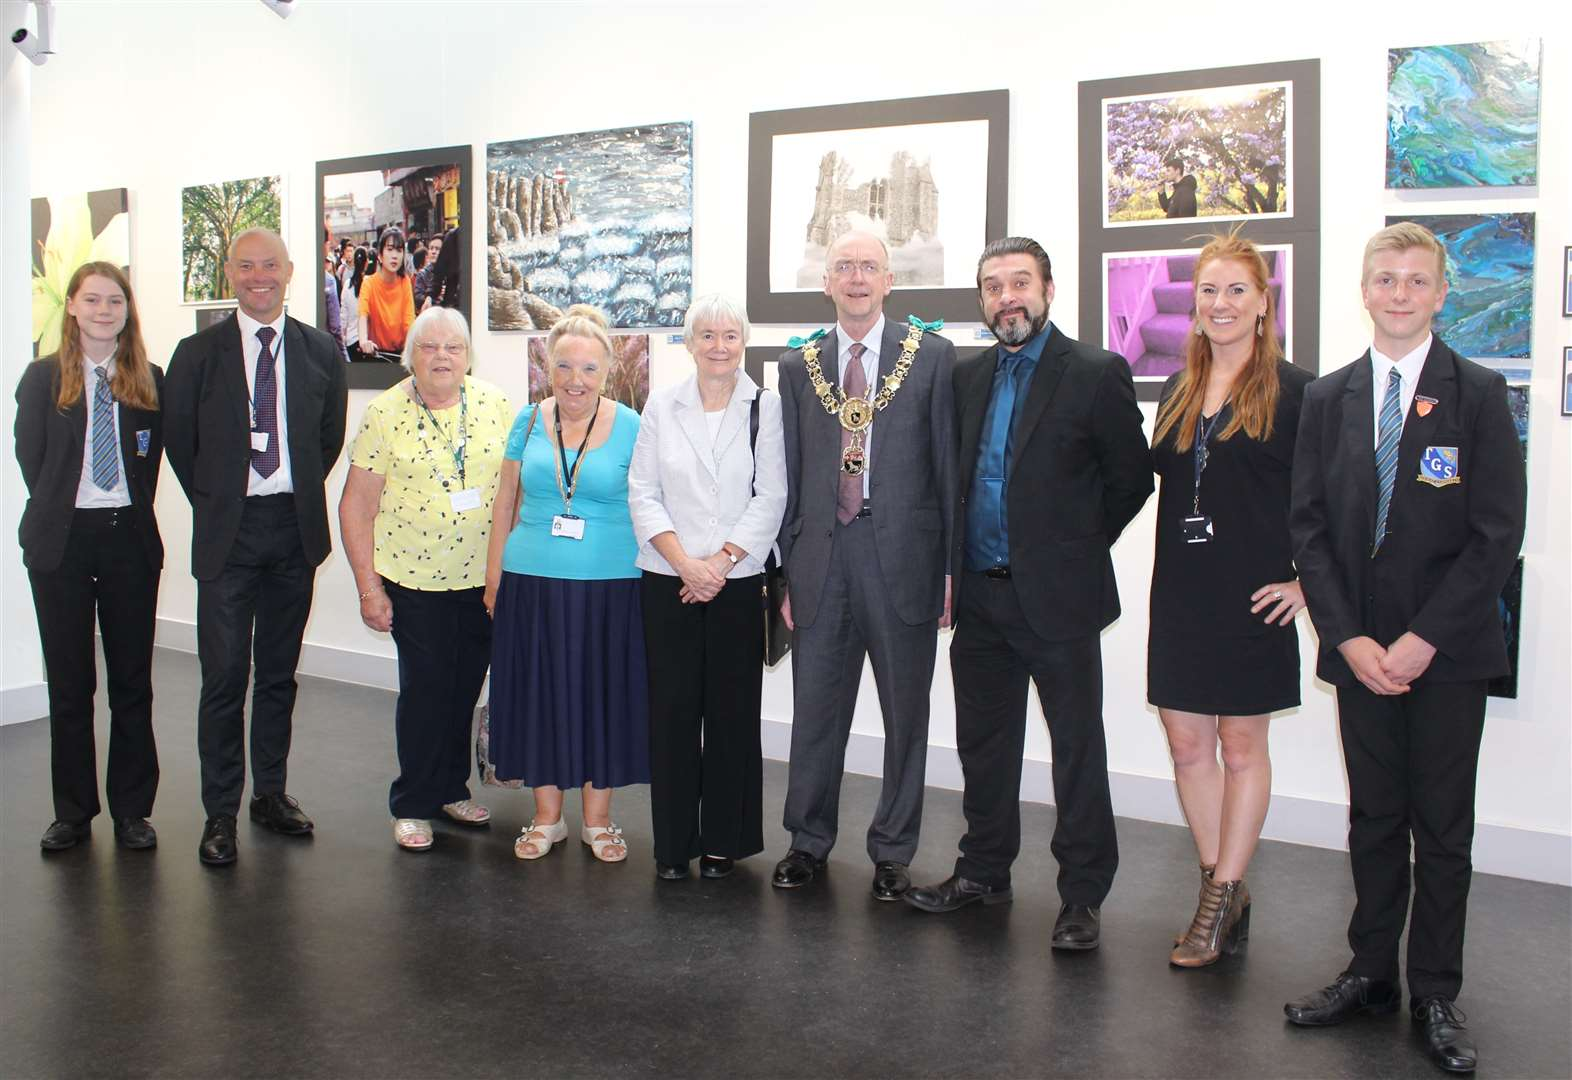 Art showcase at Thomas Gainsborough School hailed by mayor of Sudbury